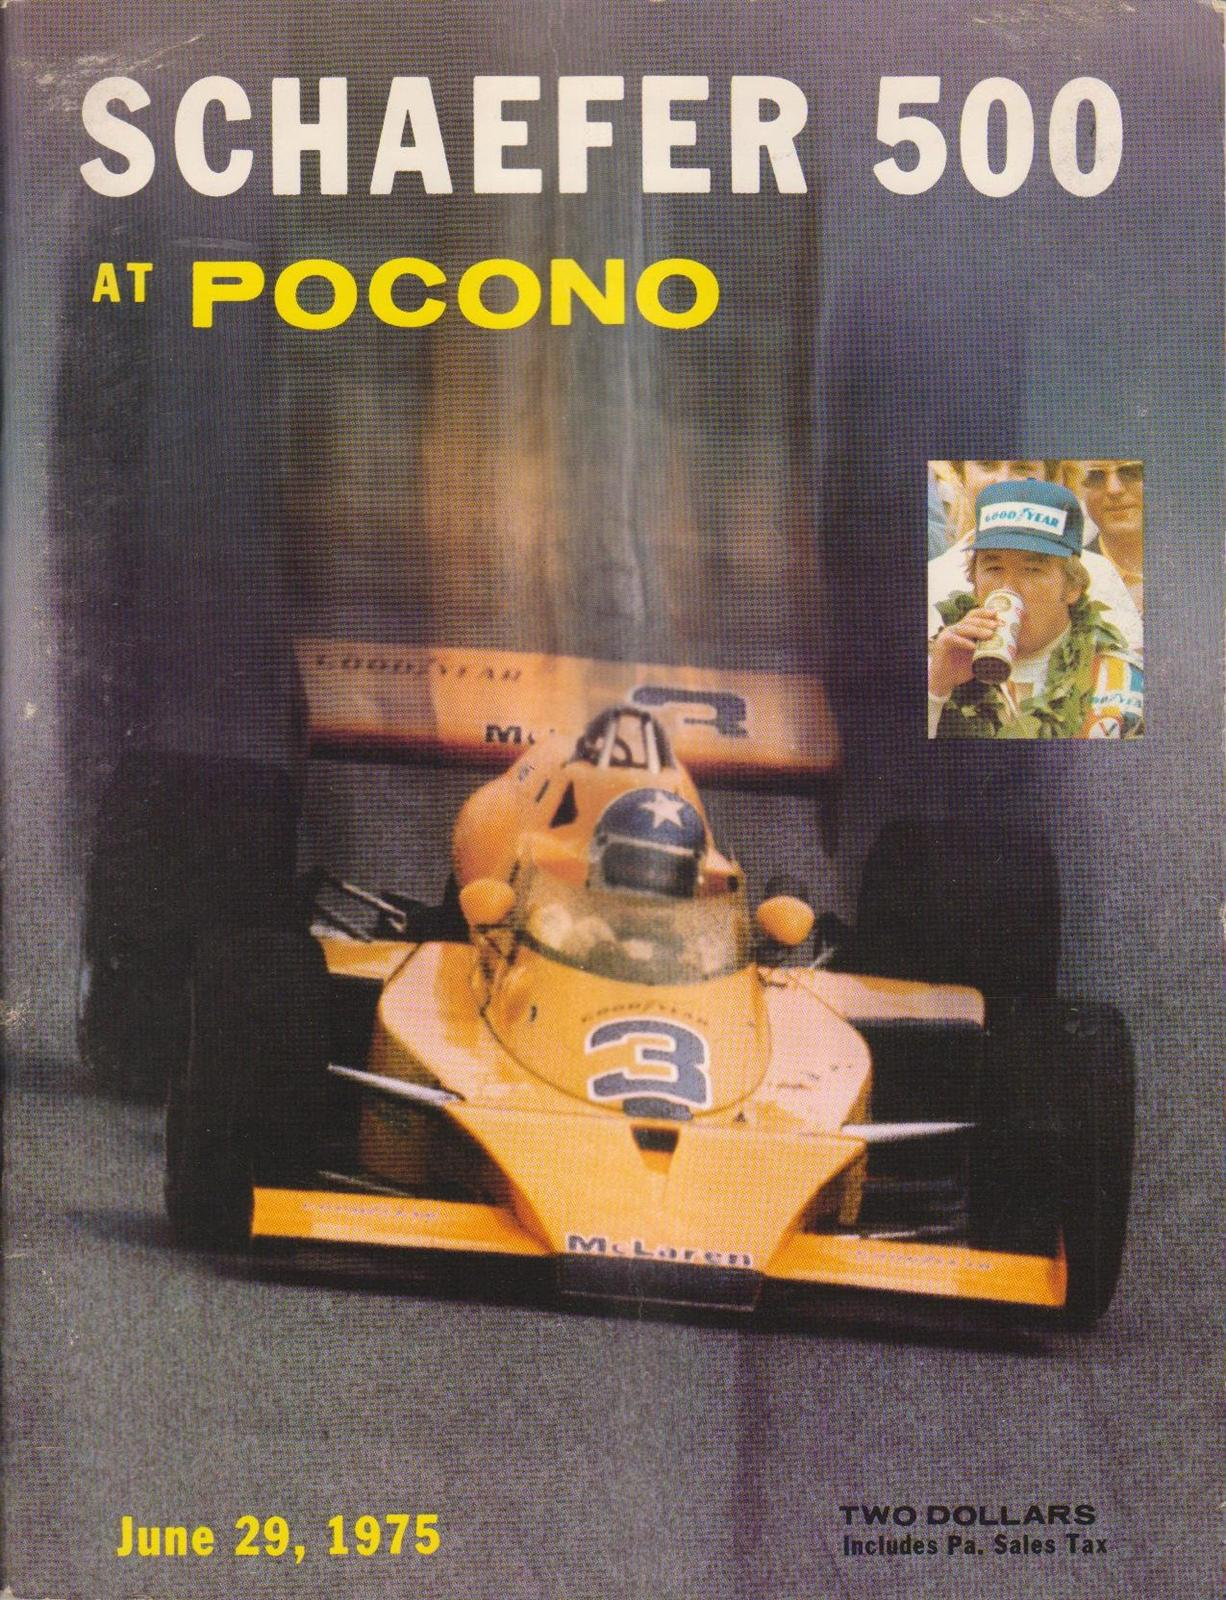 1975 Usac National Championship Programmes The Motor